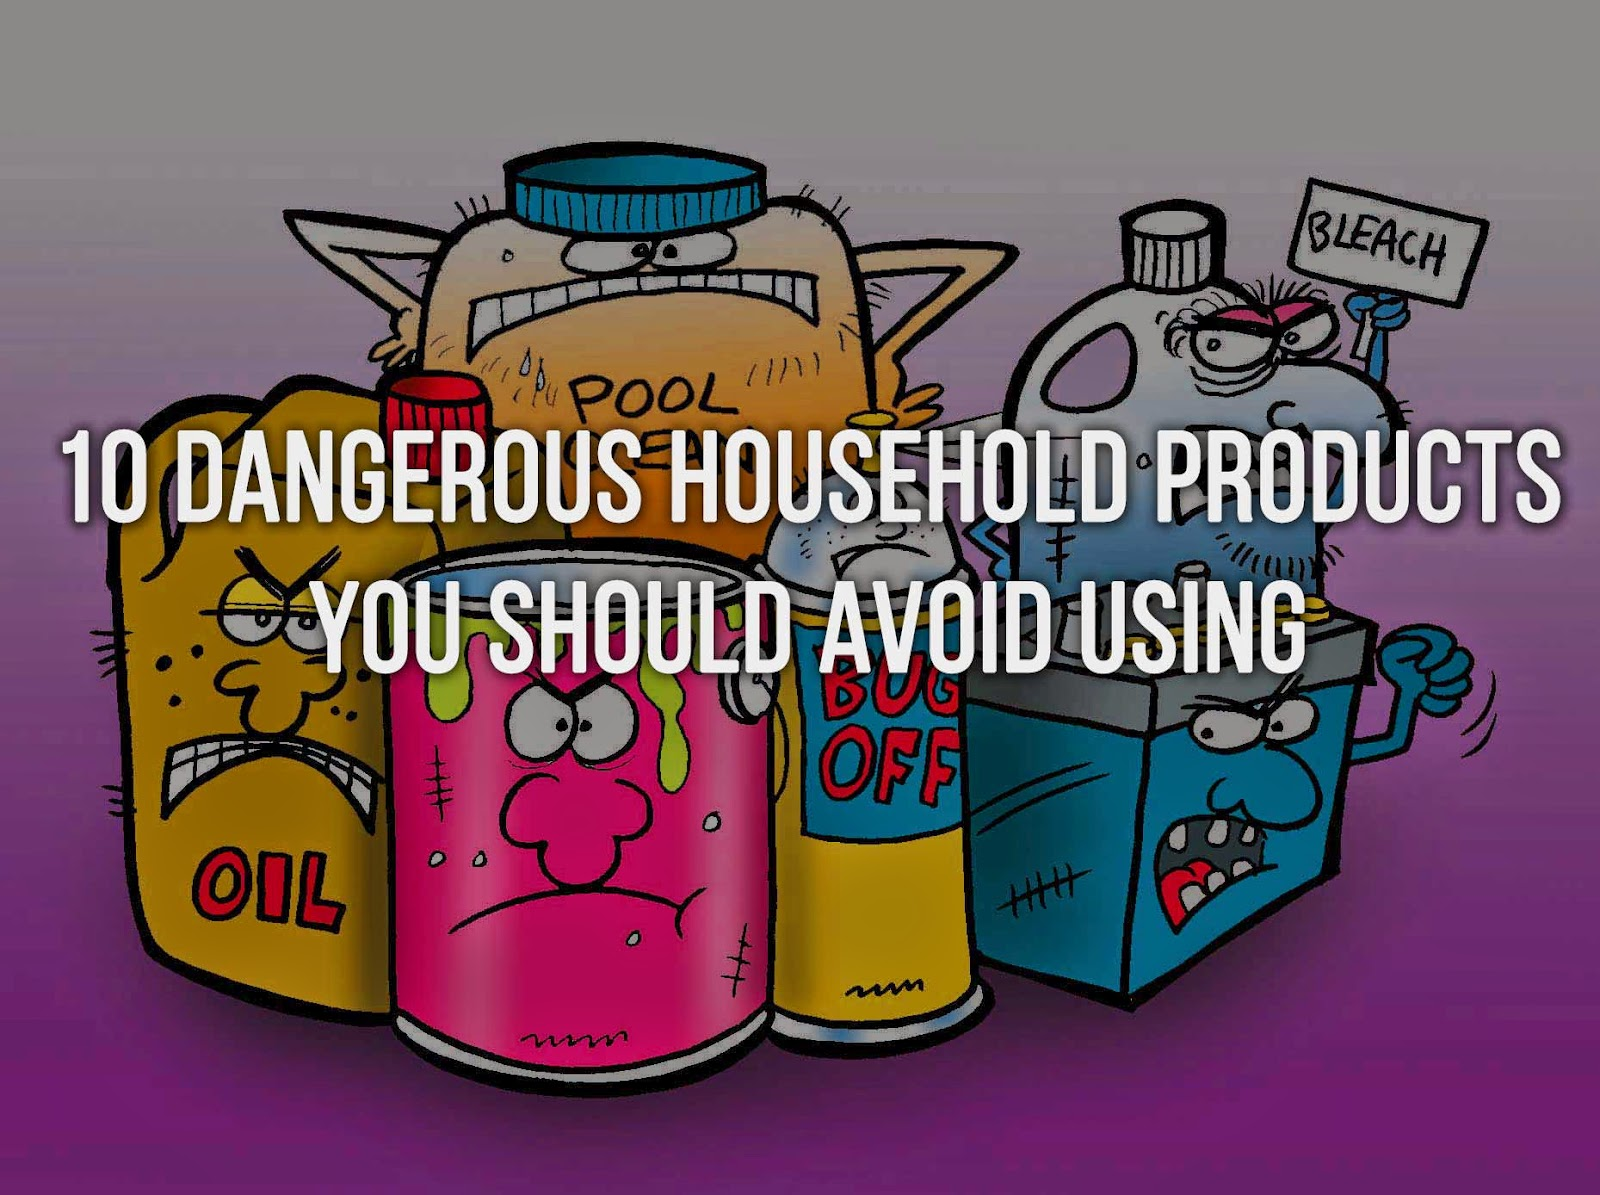 10 Dangerous Household Products You Should Avoid Using